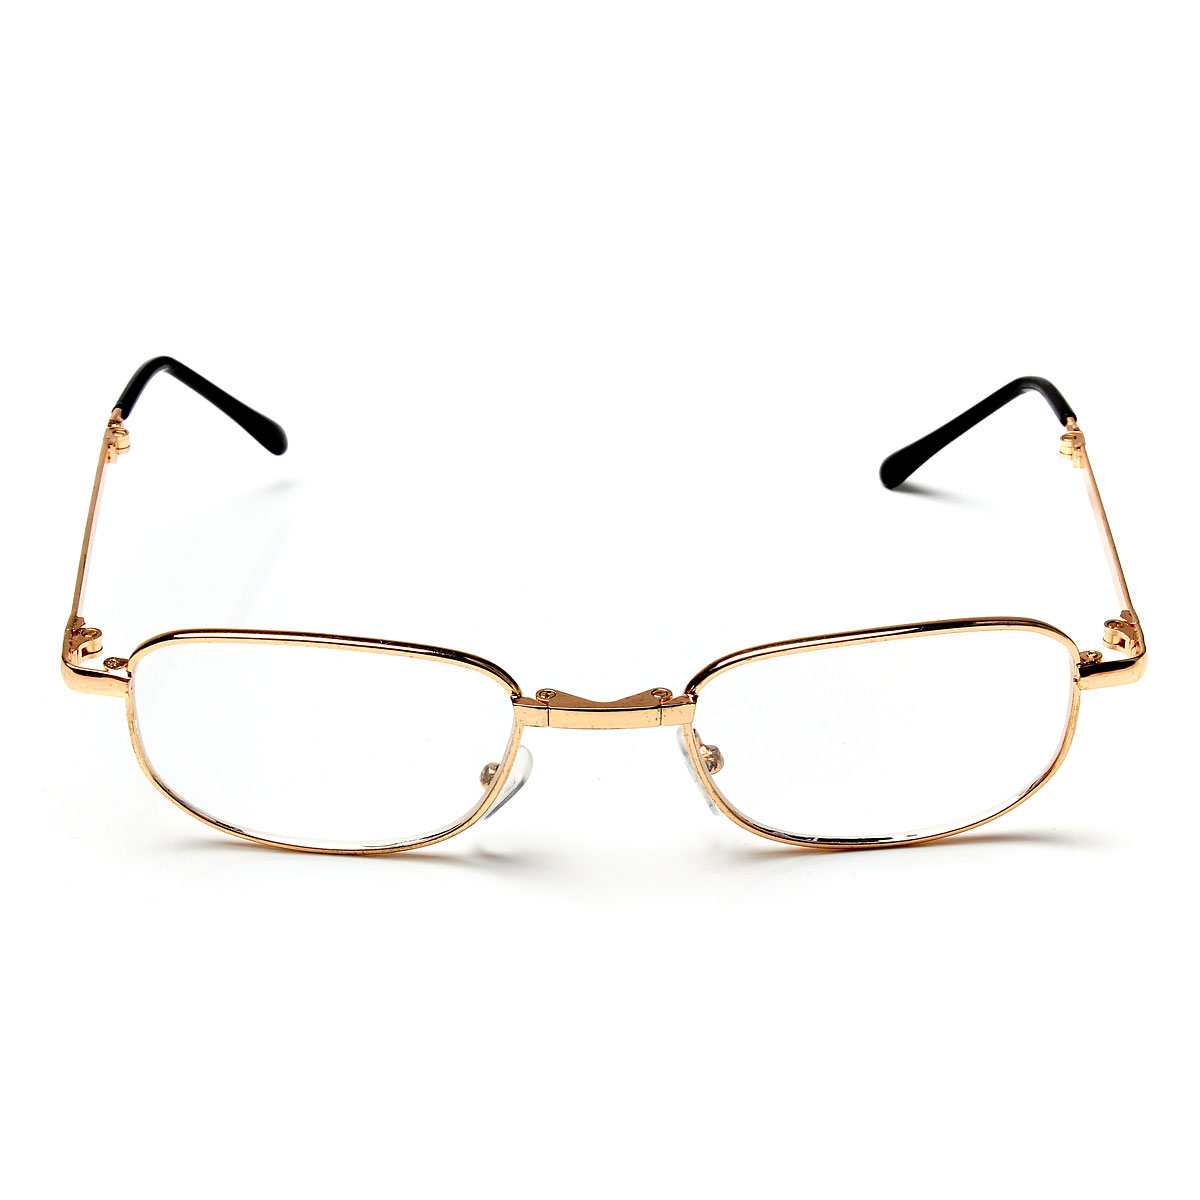 Folding Golden Frame Foldable Reading Glasses Eyeglasses ...